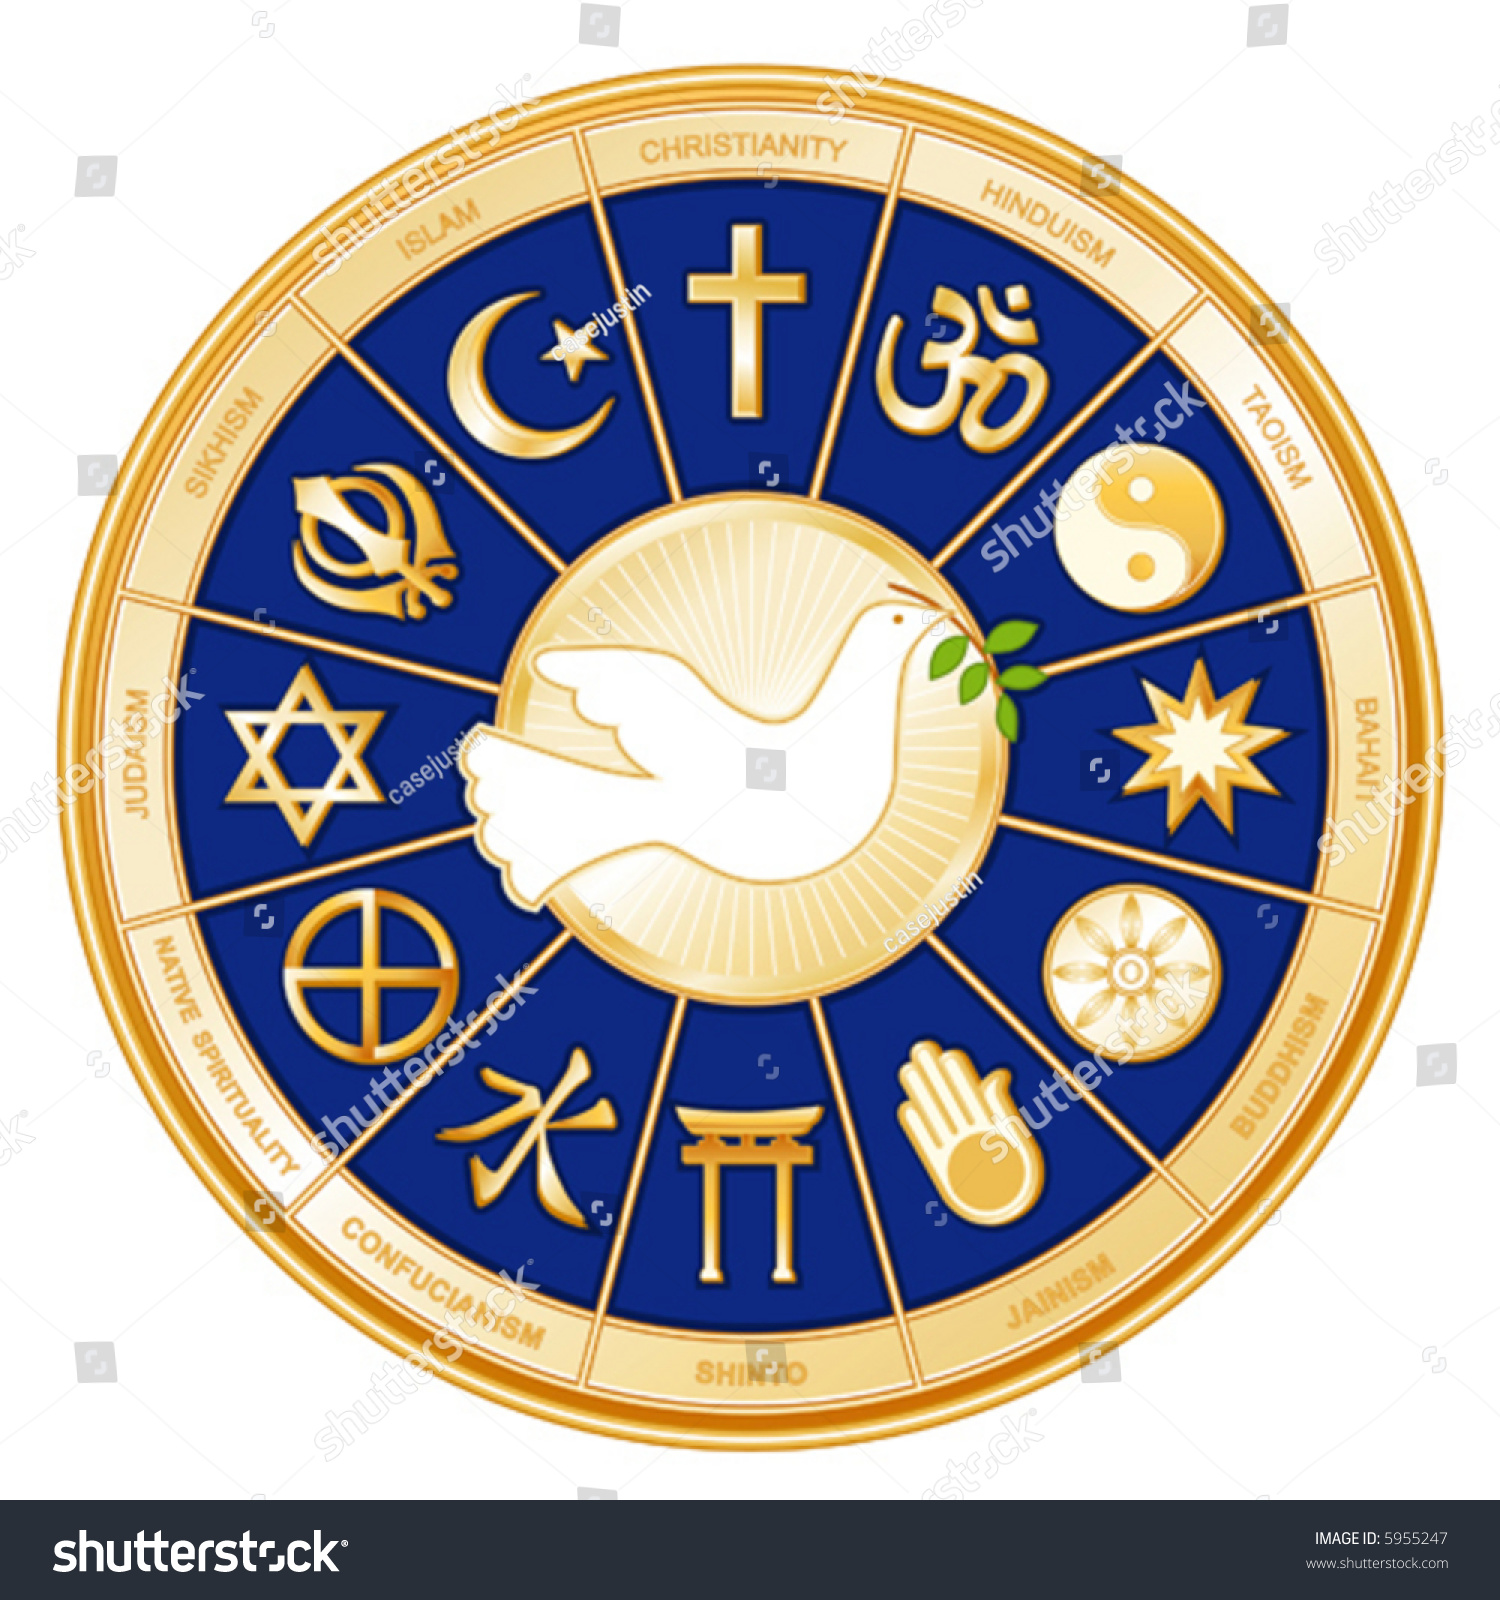 religion and peace christianity and islam s 2010-01-21 essay on religion and peace: the role of christianity for world peace by rev r arulappa,  and love towards all men for god's sake is finally what makes for peace in the world.